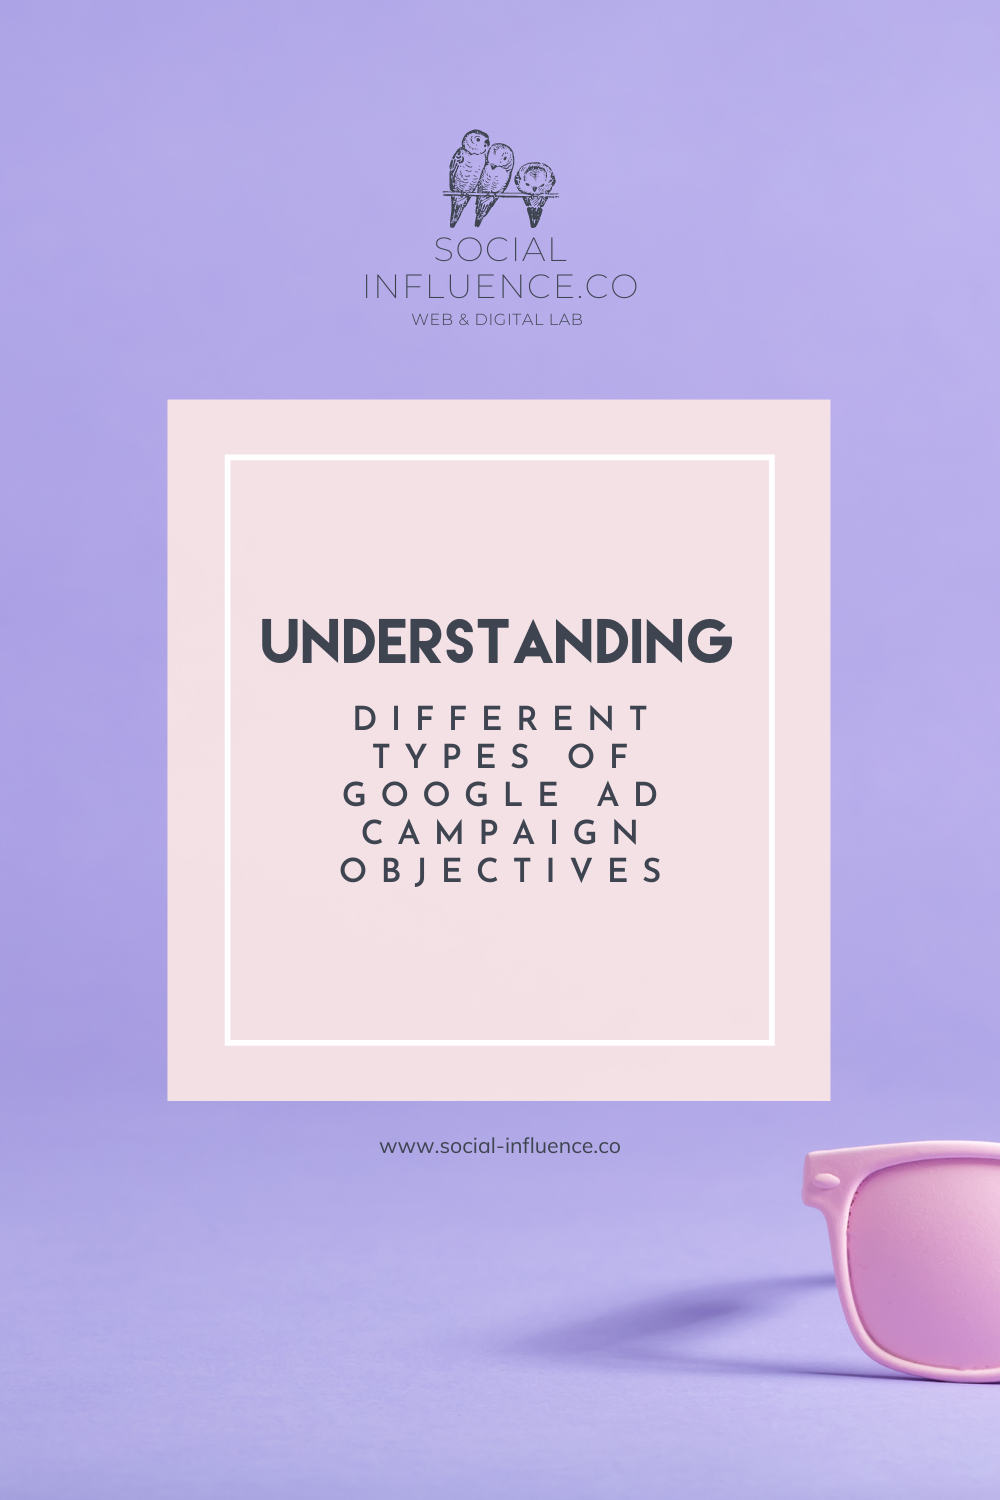 Understanding Different Types of Google Ad Campaign Objectives